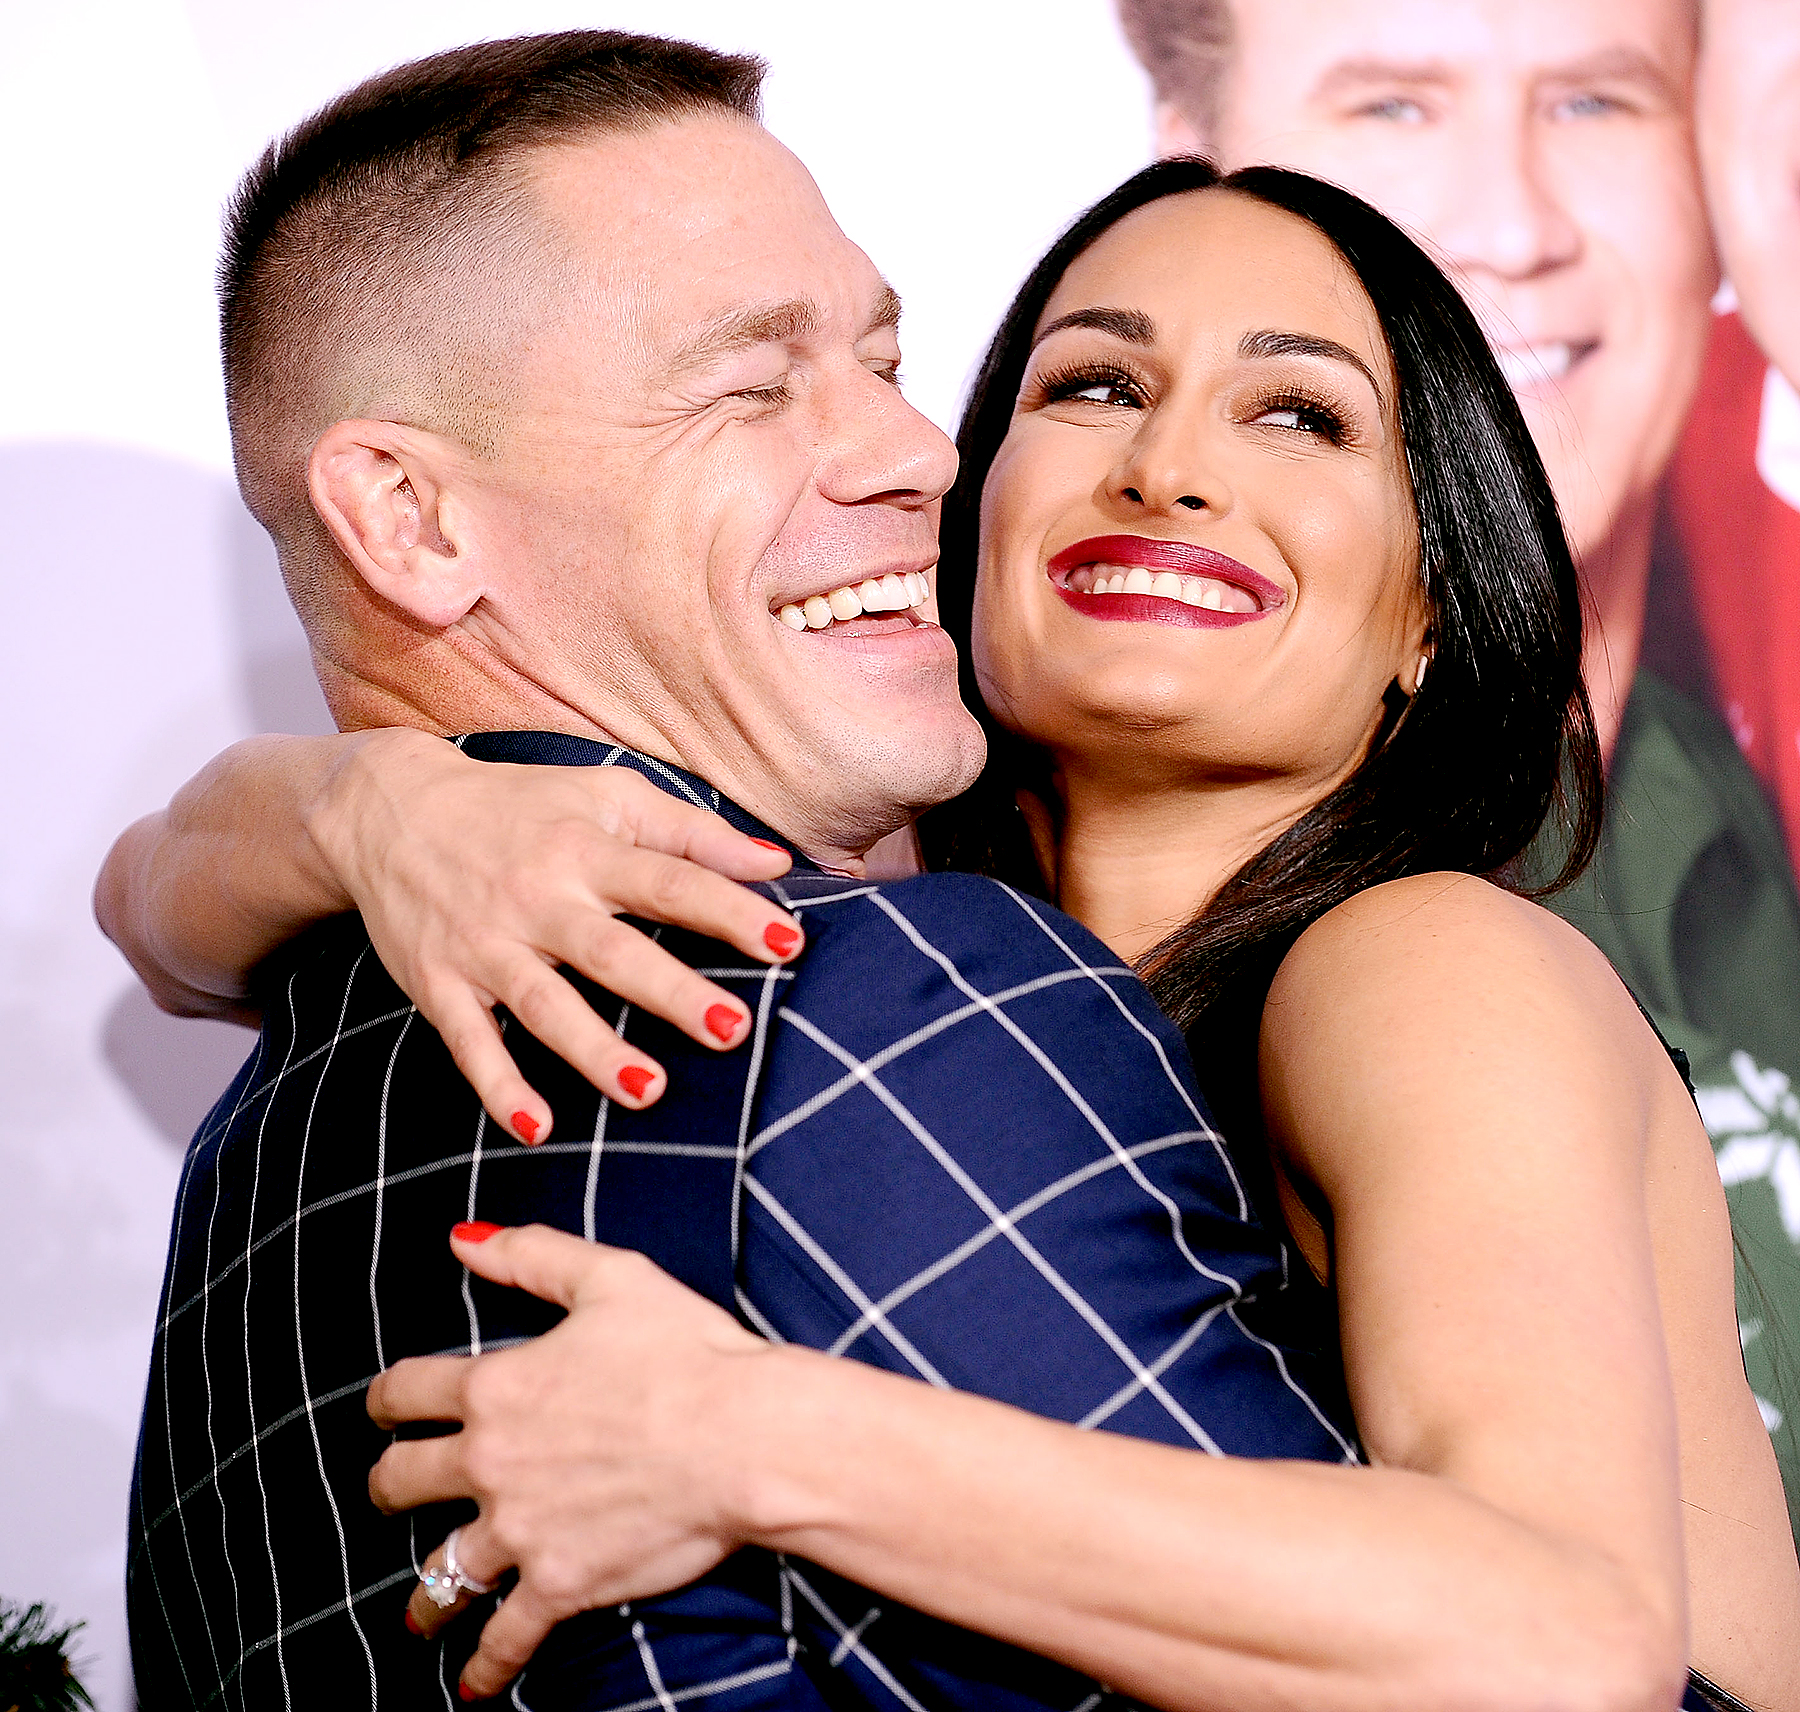 John Cena & Nikki Bella End Their Engagement & Announce Split After 6 Years